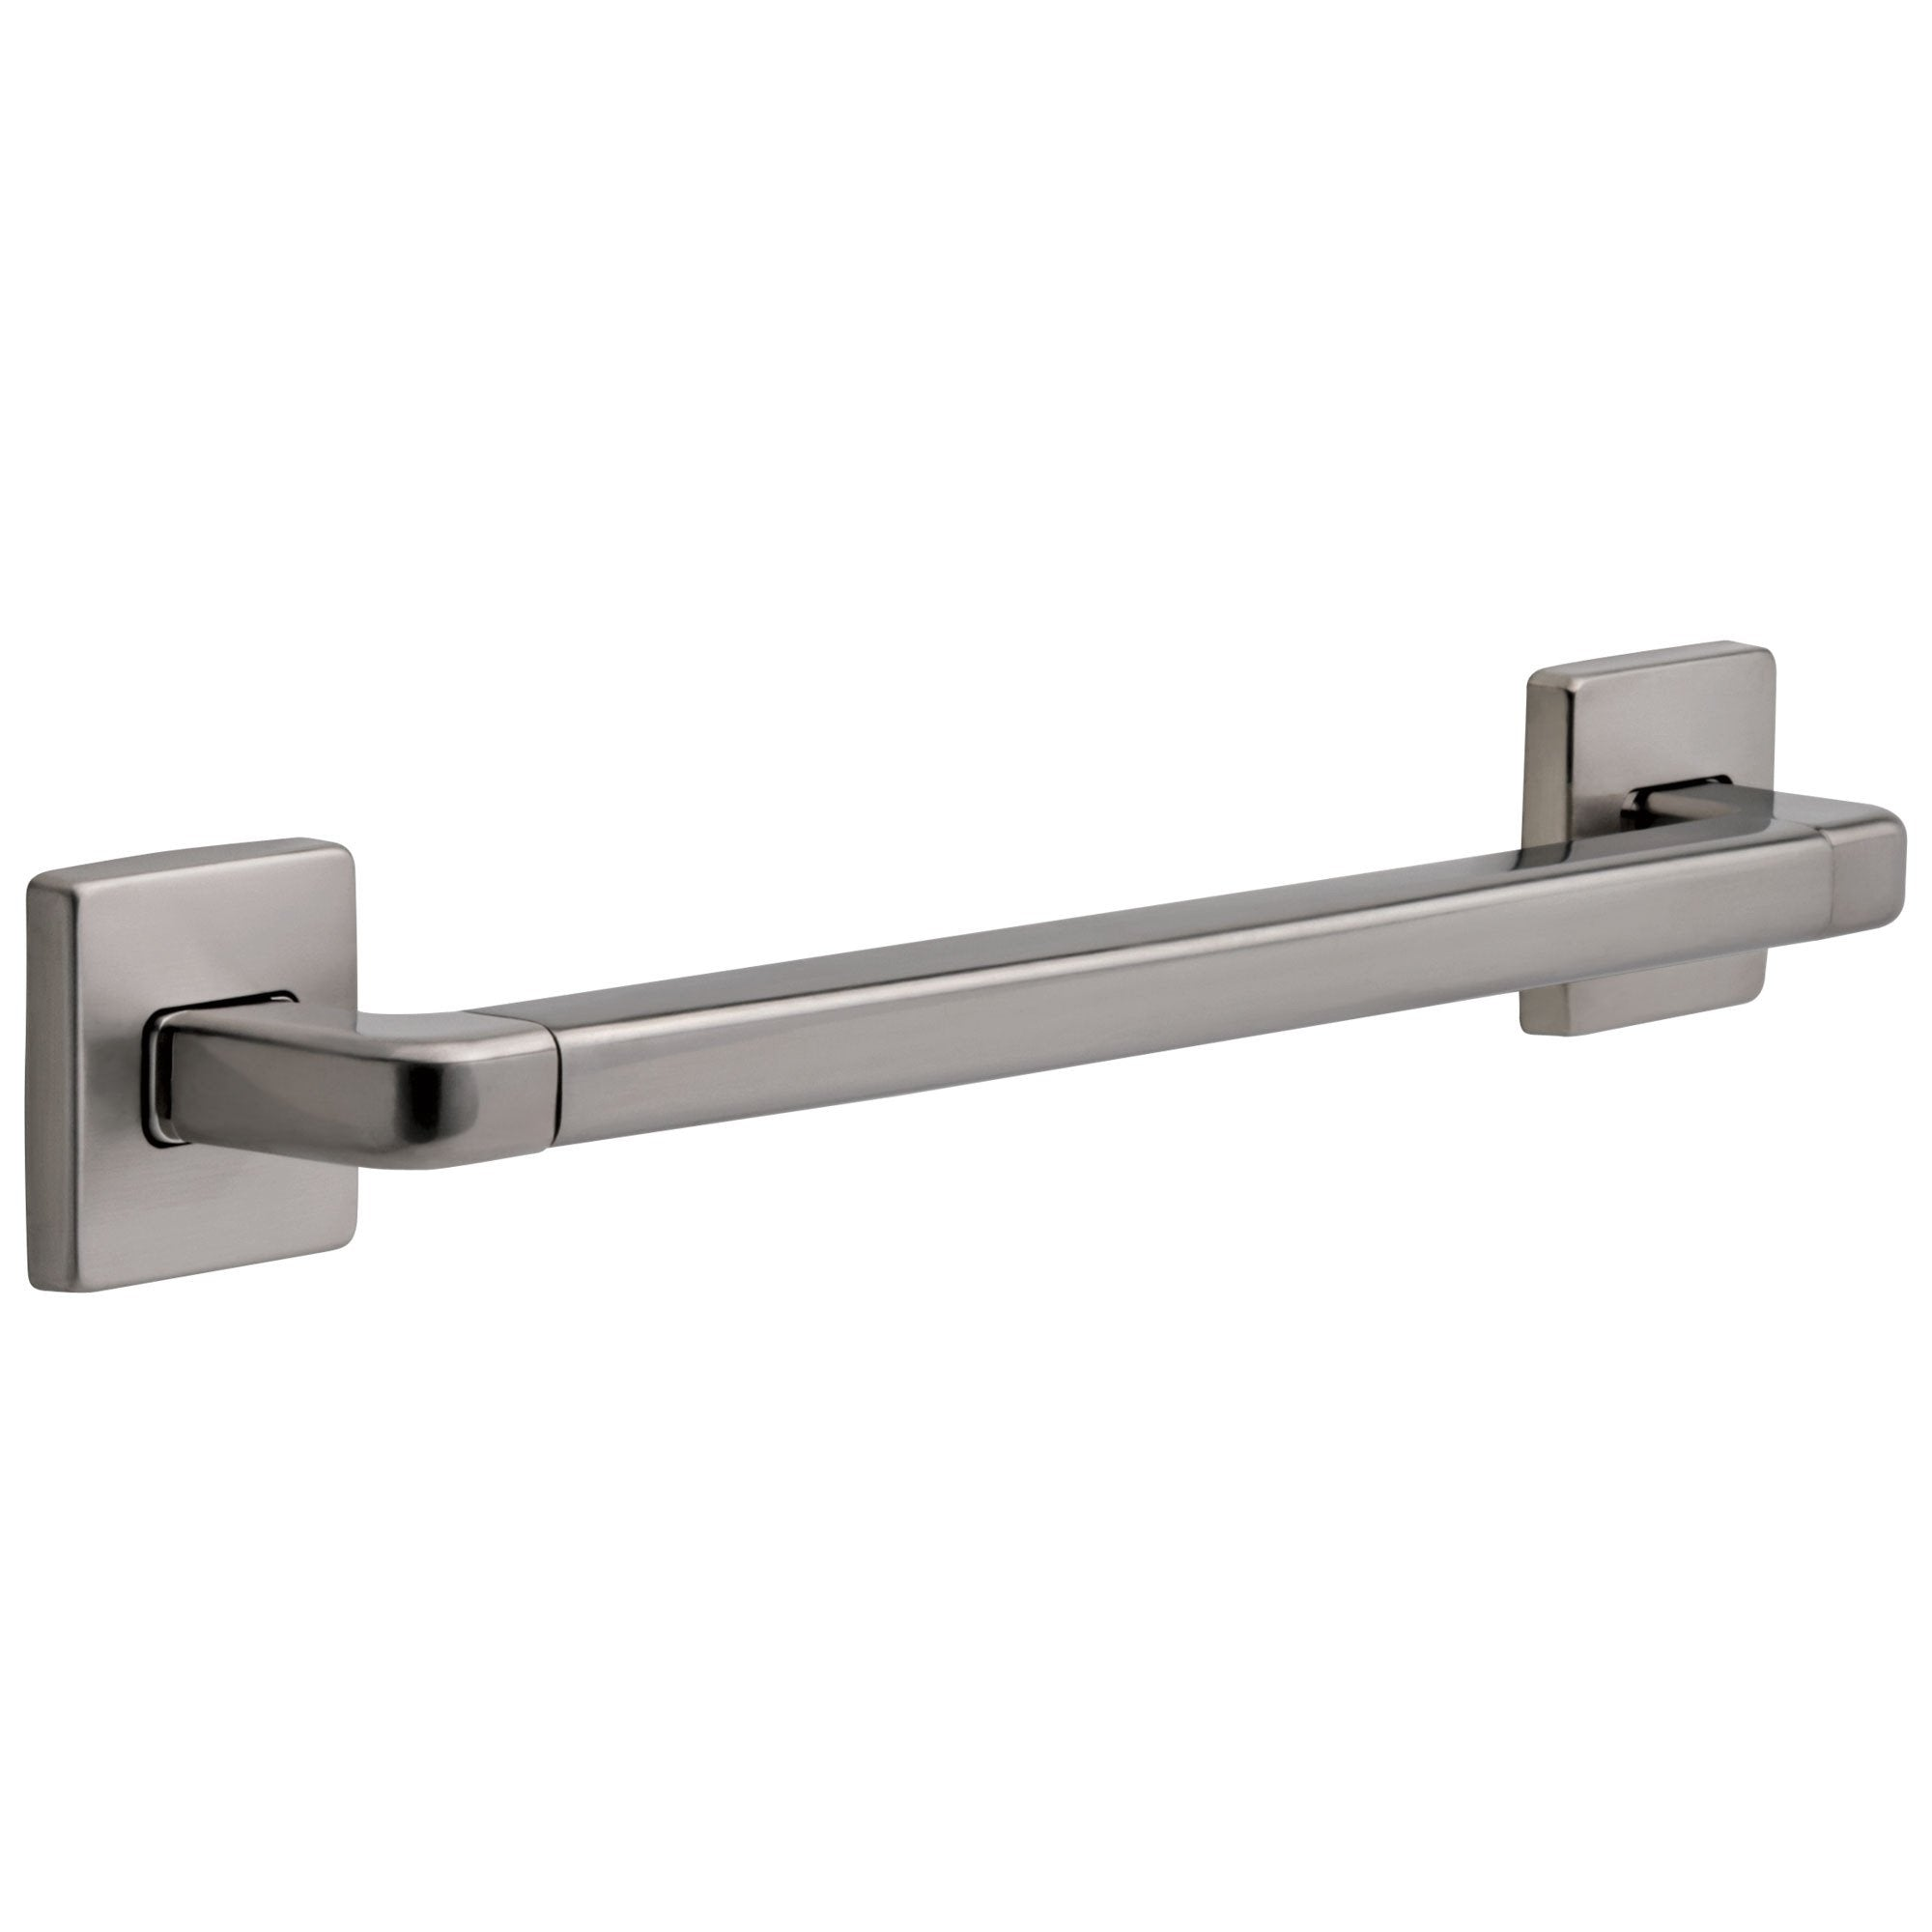 "Delta Bath Safety Collection Stainless Steel Finish Angular Modern Decorative Wall Mounted 18"" ADA Approved Grab Bar D41918SS"